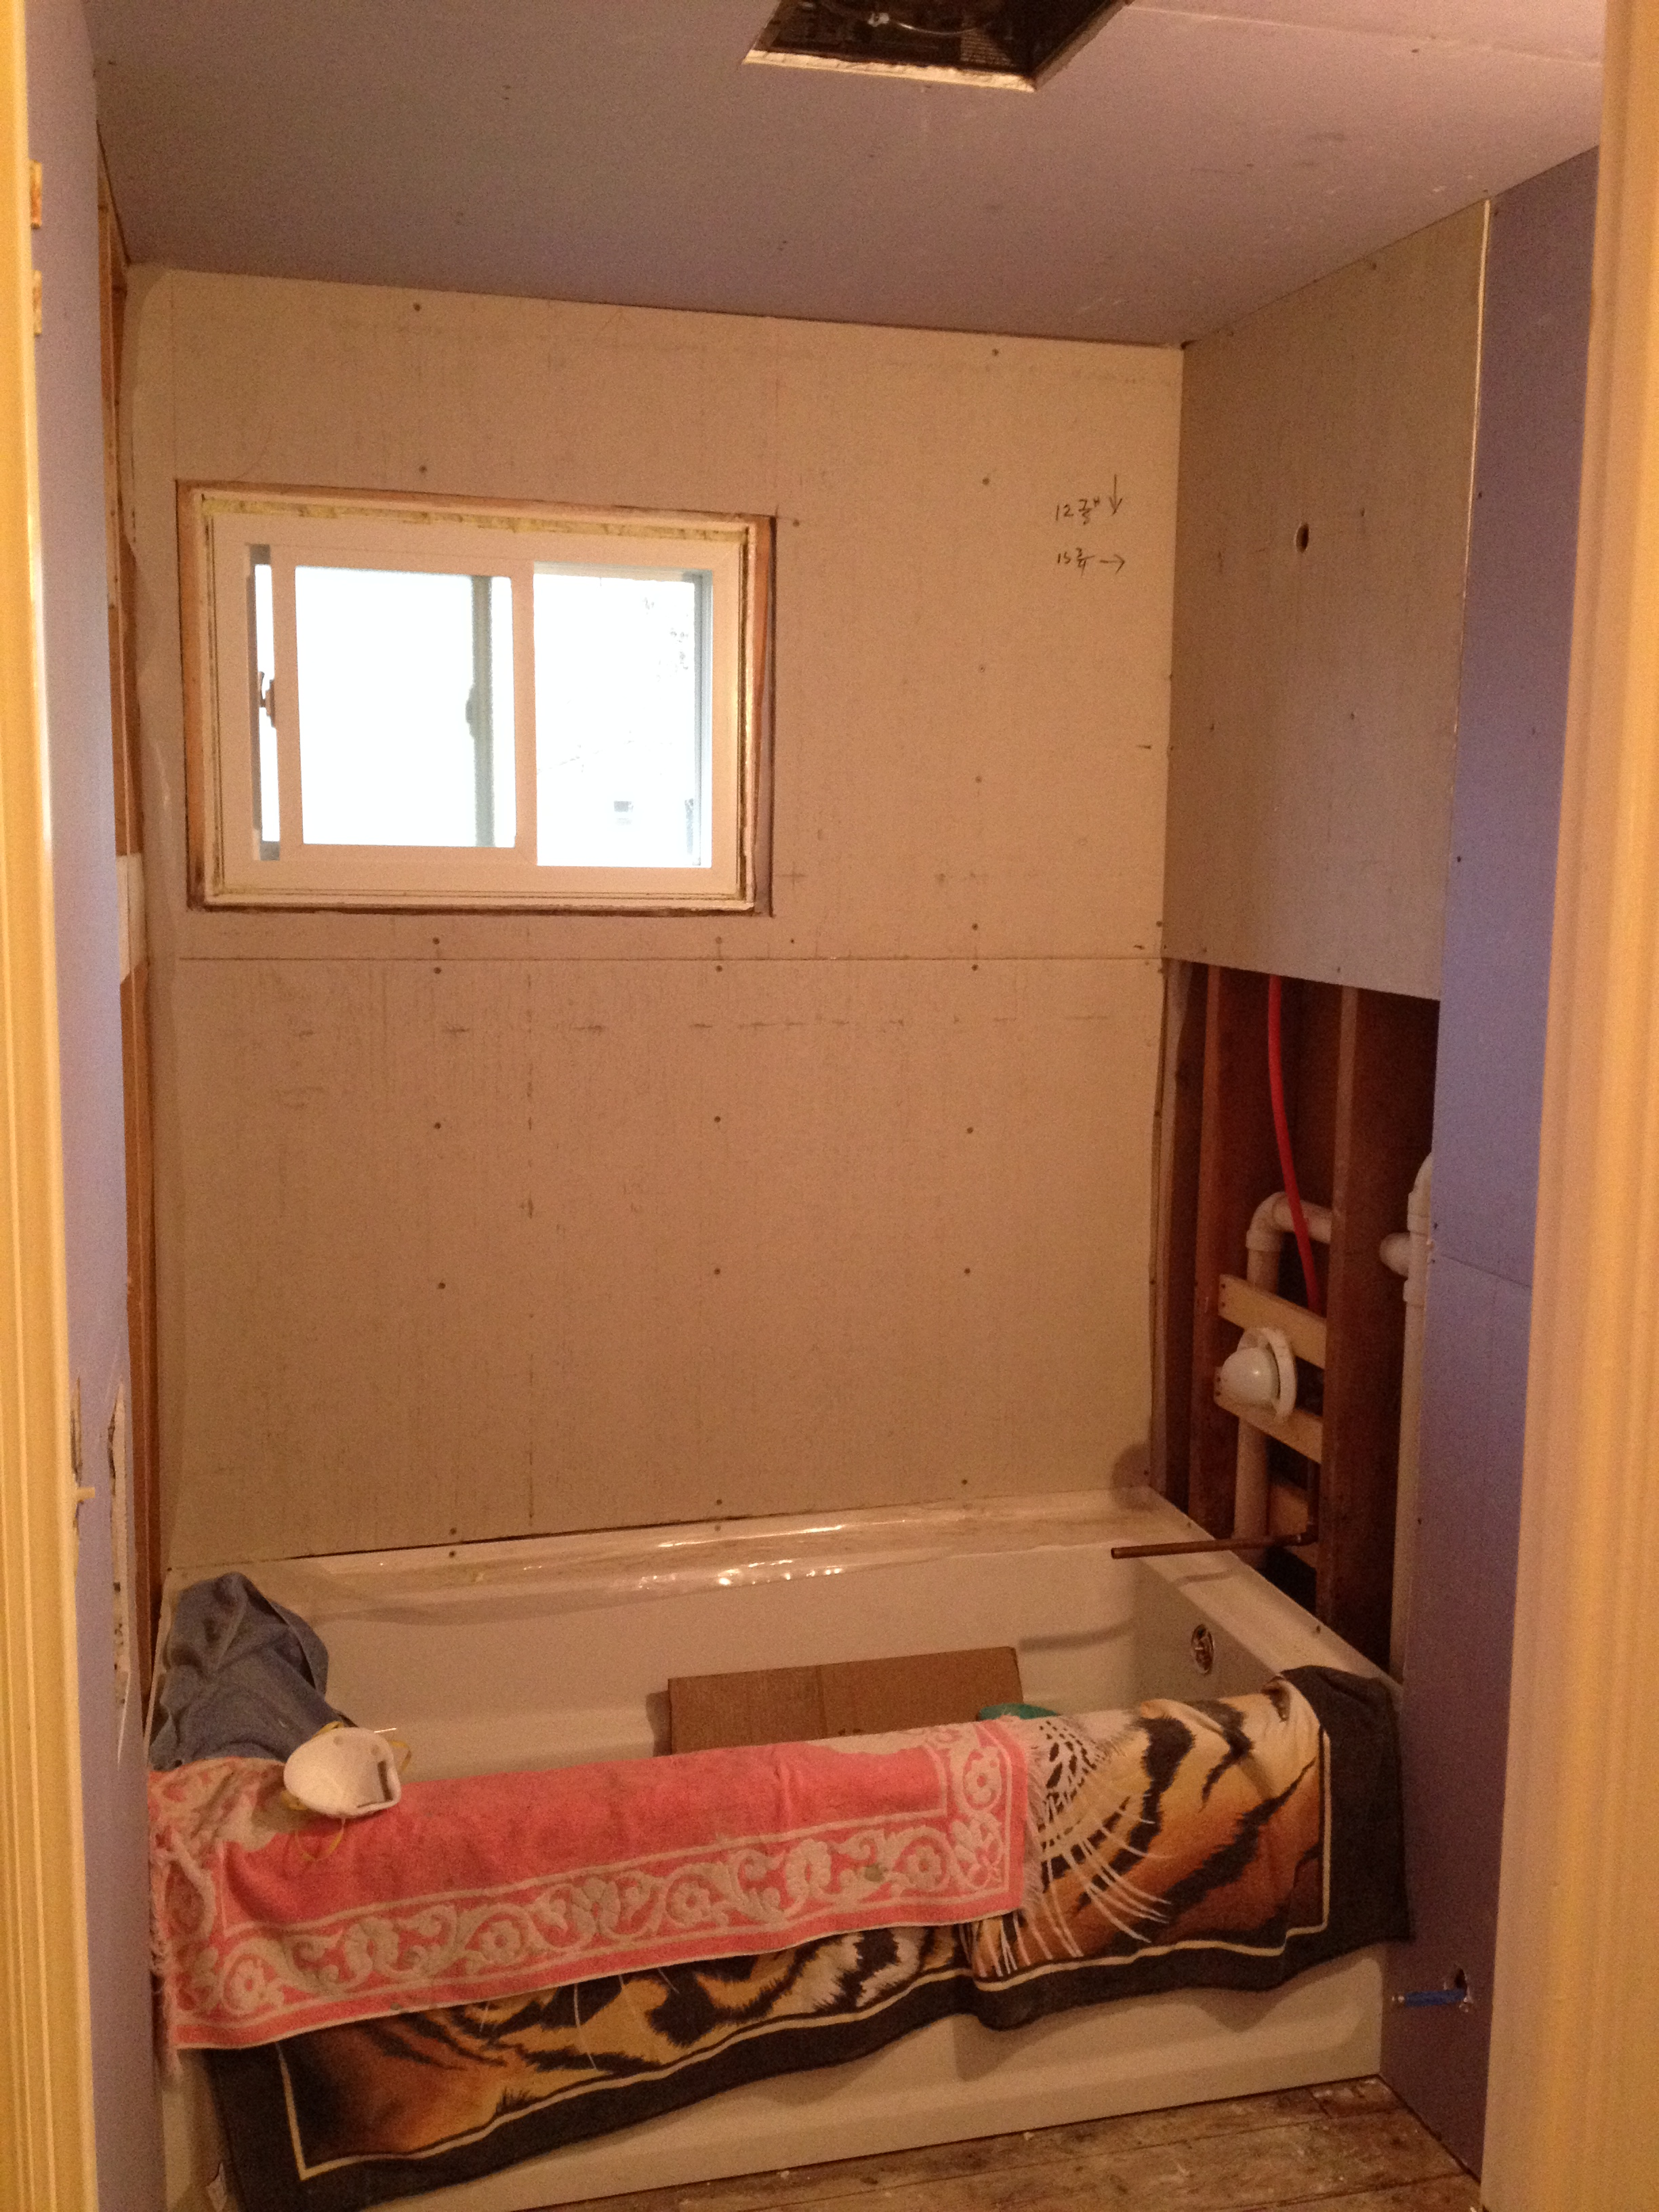 How to Install Shower/Floor Hardie Board – haus2home